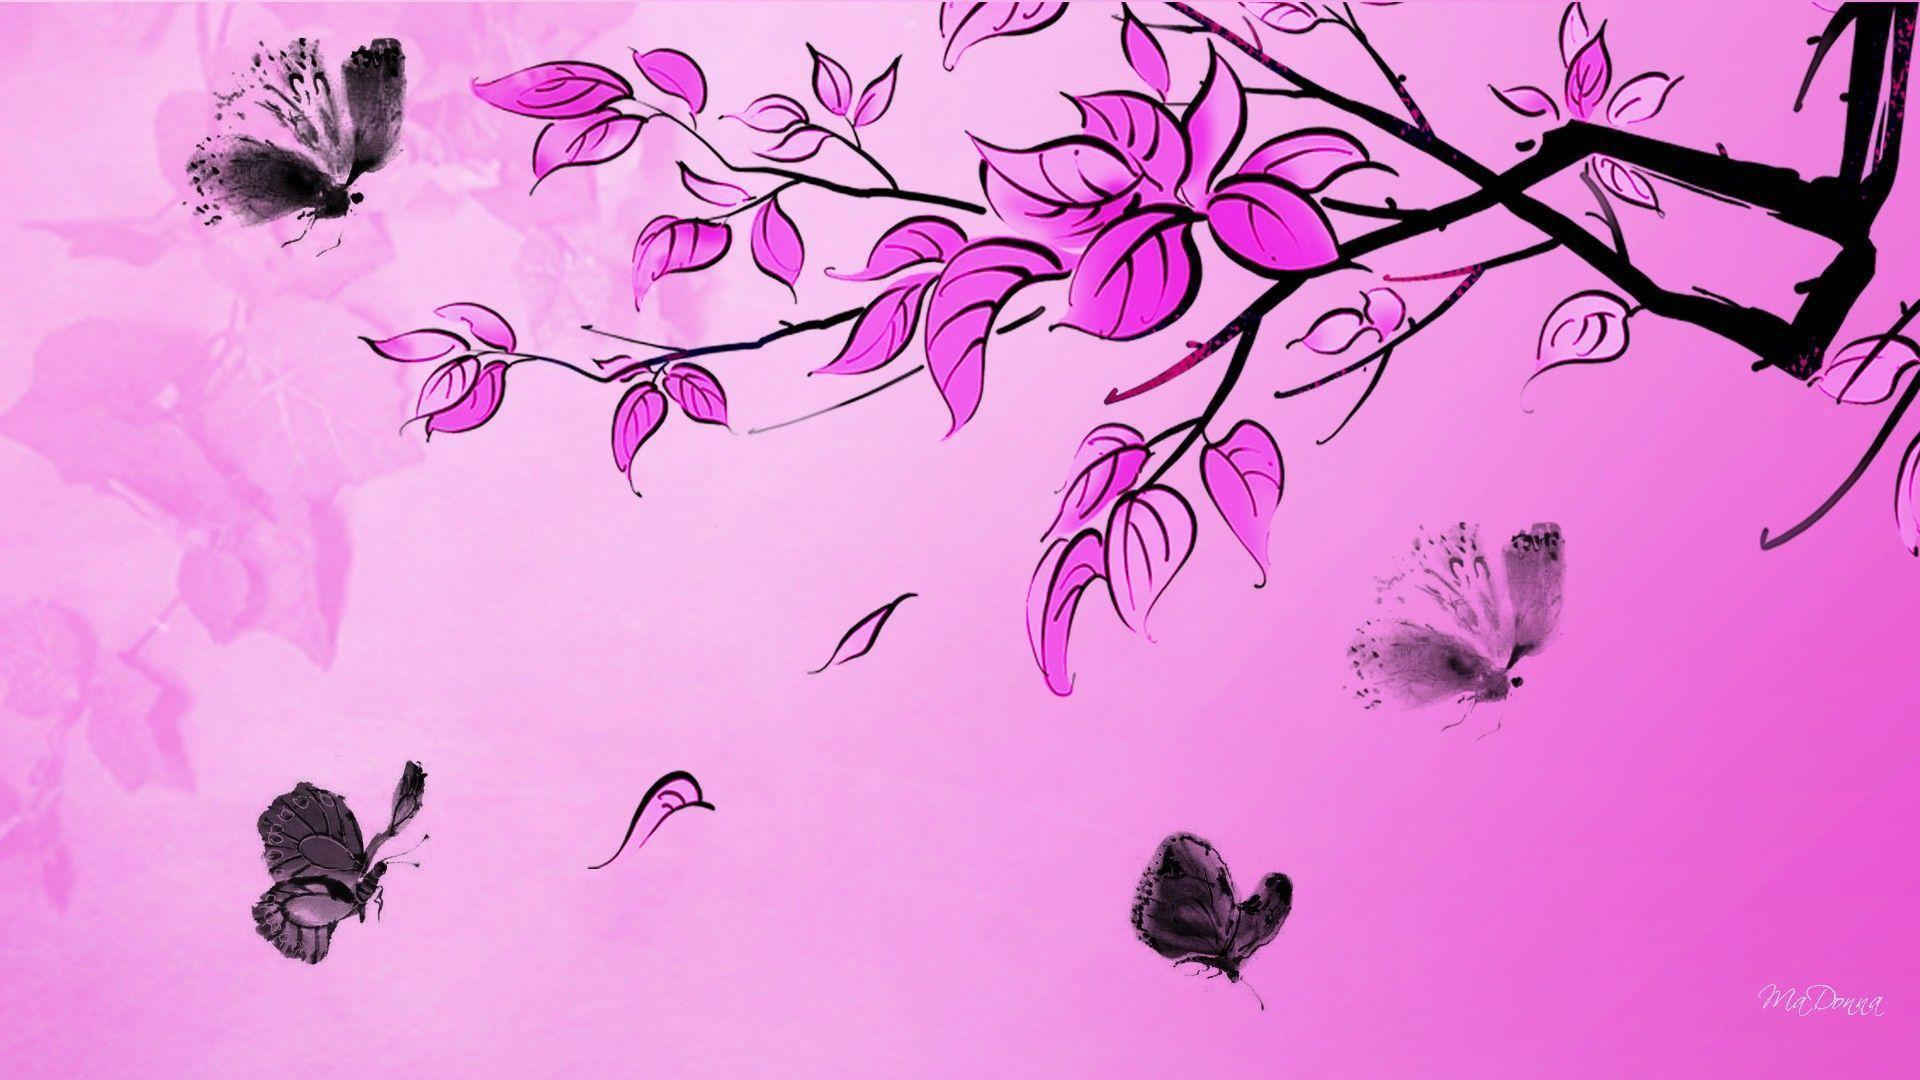 Black Butterfly Wallpapers   Wallpaper Cave Wallpapers For   Hot Pink And Black Butterfly Wallpaper